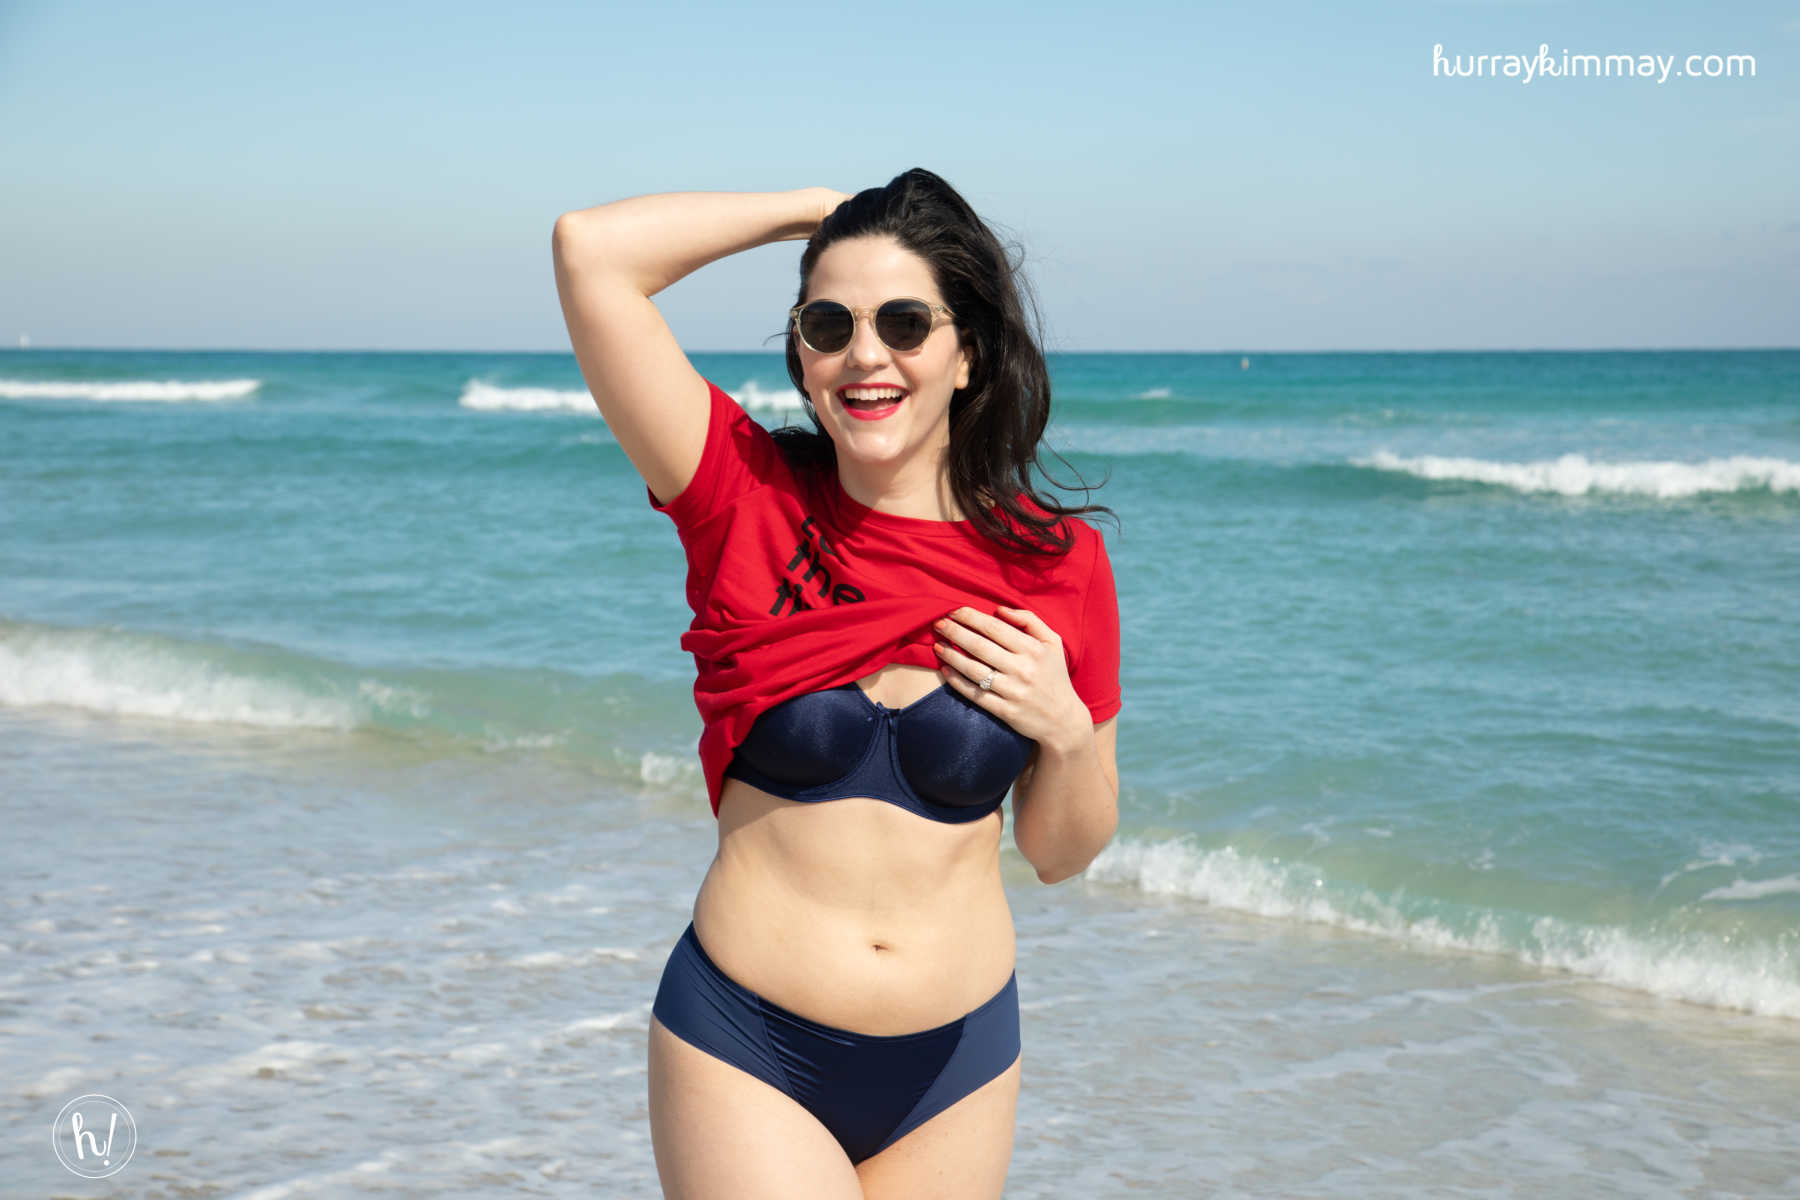 Kimmay enjoying the waves wearing the Mystique Underwire Bra from Dominique during the #HurrayVacay in Miami!